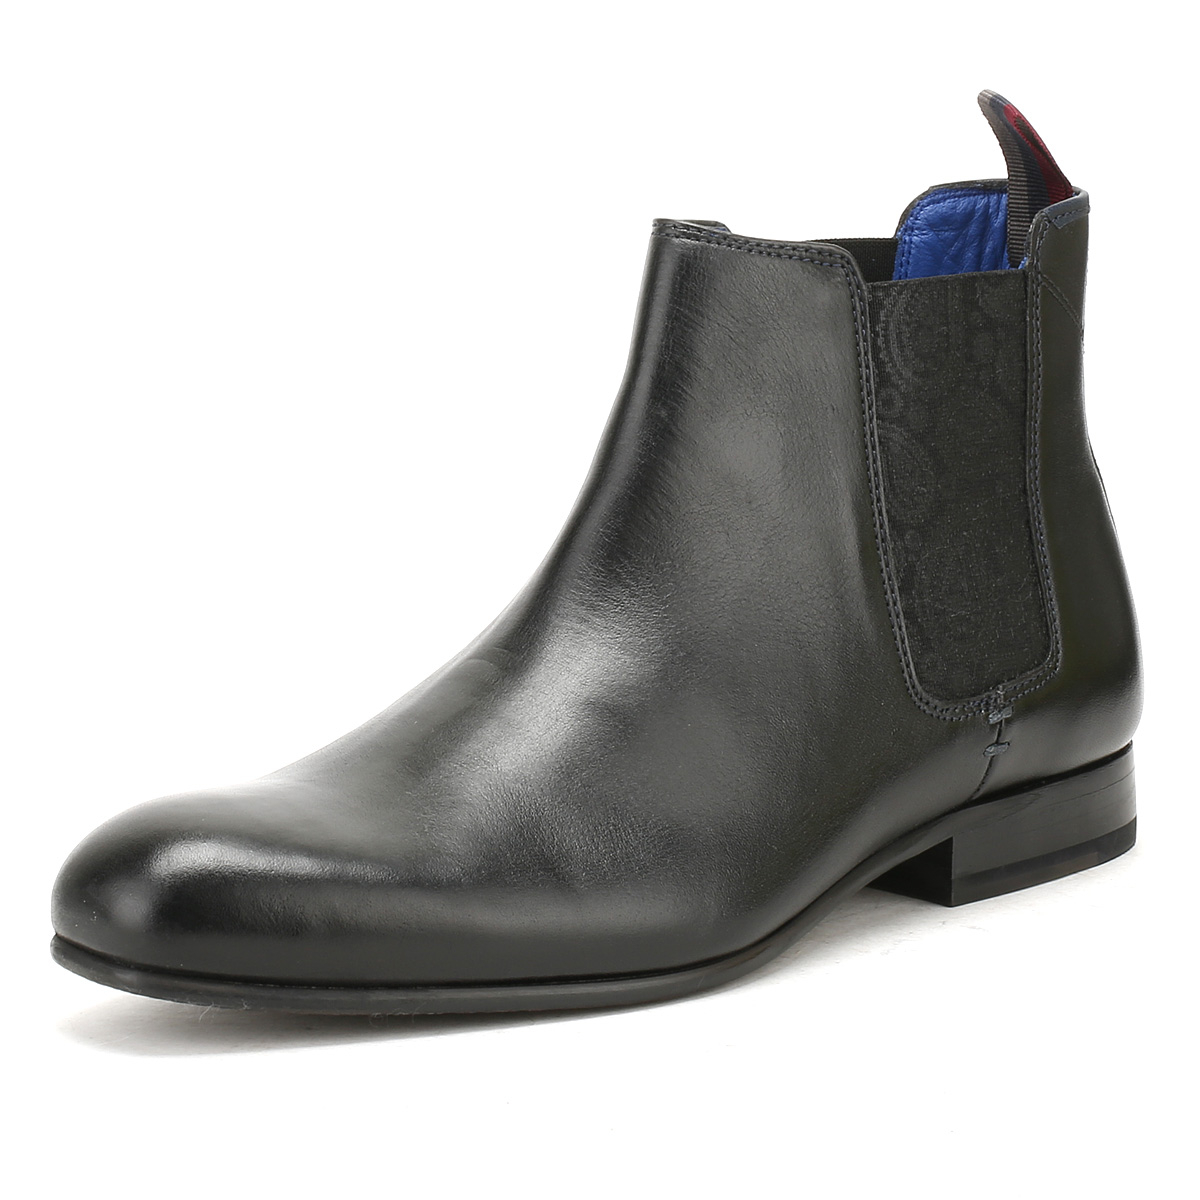 44811ead0 Details about Ted Baker Mens Black Leather Kayto Chelsea Boots Leather  Winter Ankle Shoes